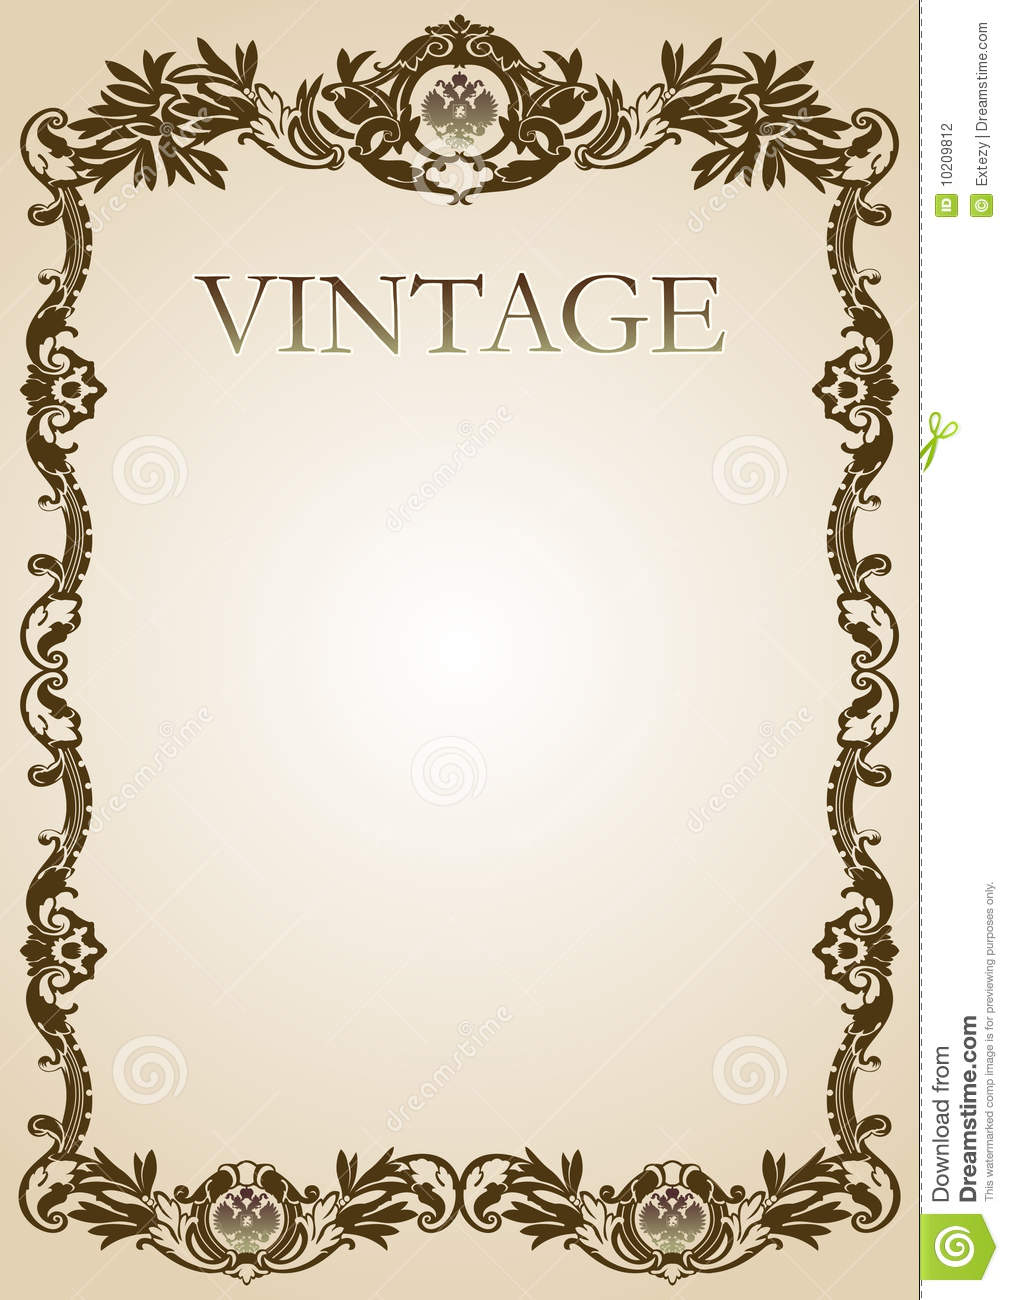 Vintage style frame brown stock vector. Illustration of decorative ...